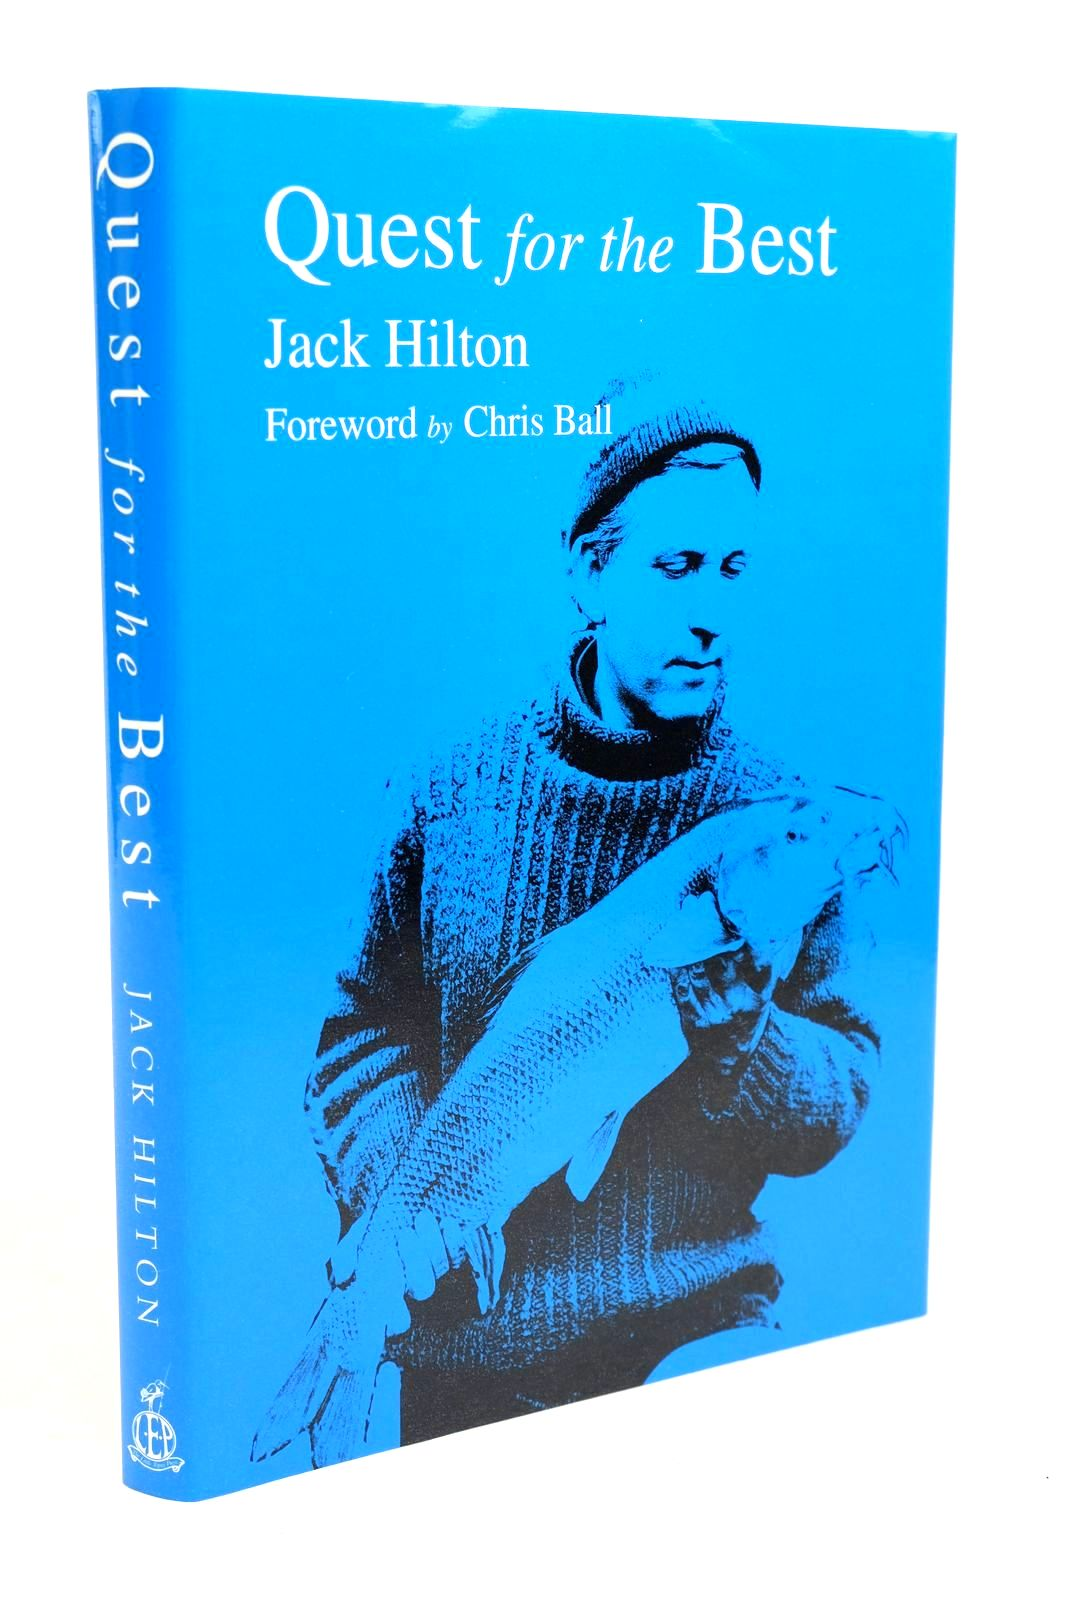 Photo of QUEST FOR THE BEST written by Hilton, Jack Ball, Chris illustrated by O'Reilly, Tom published by The Little Egret Press (STOCK CODE: 1321206)  for sale by Stella & Rose's Books